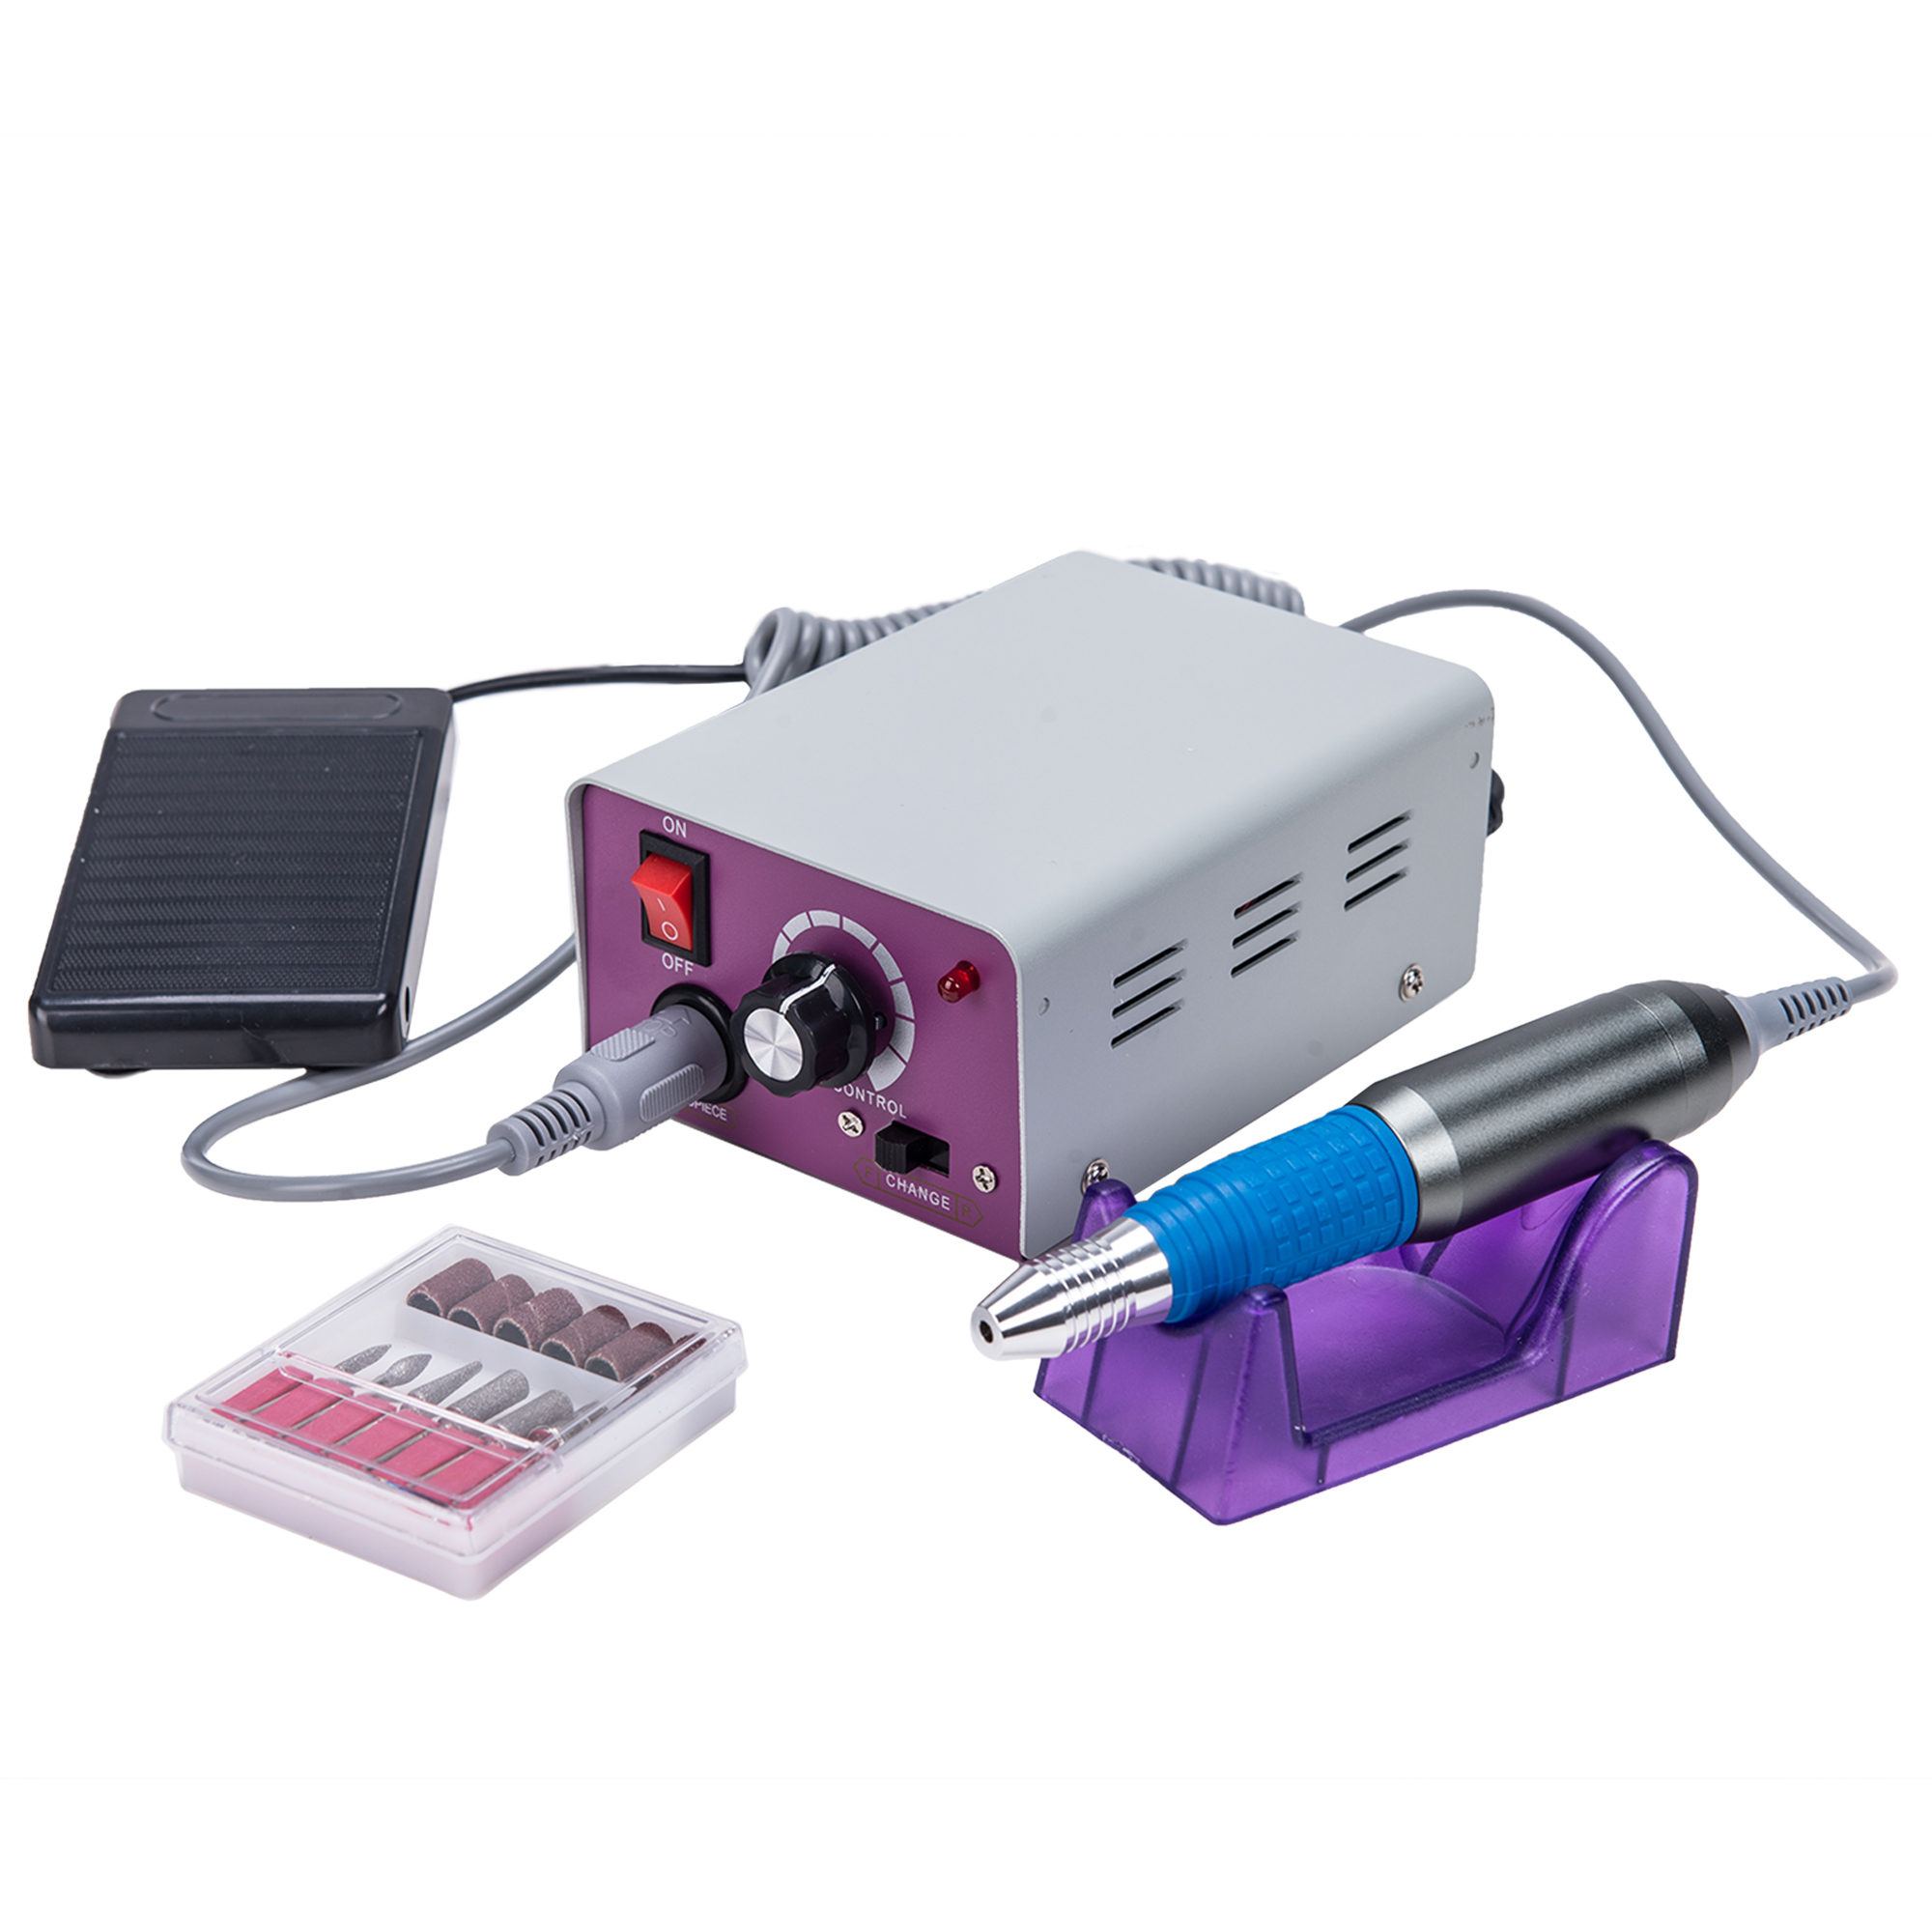 Professional Electric Nail Drill Machine Kit 25,000 RPM for Acrylic Nails Manicure Pedicure